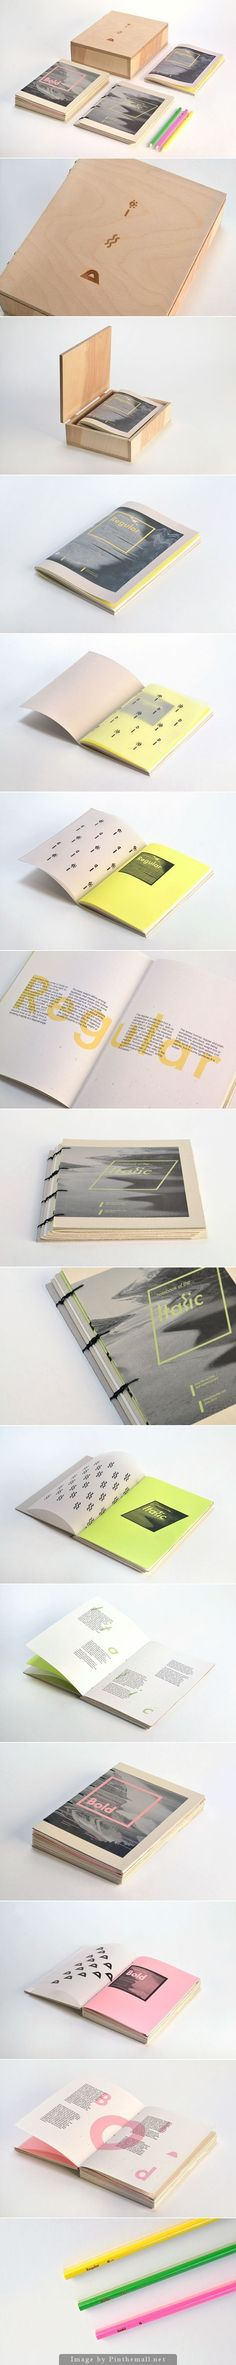 31 best transparent pages reference images on pinterest editorial font book by pin ju chen layout color pop fandeluxe Image collections